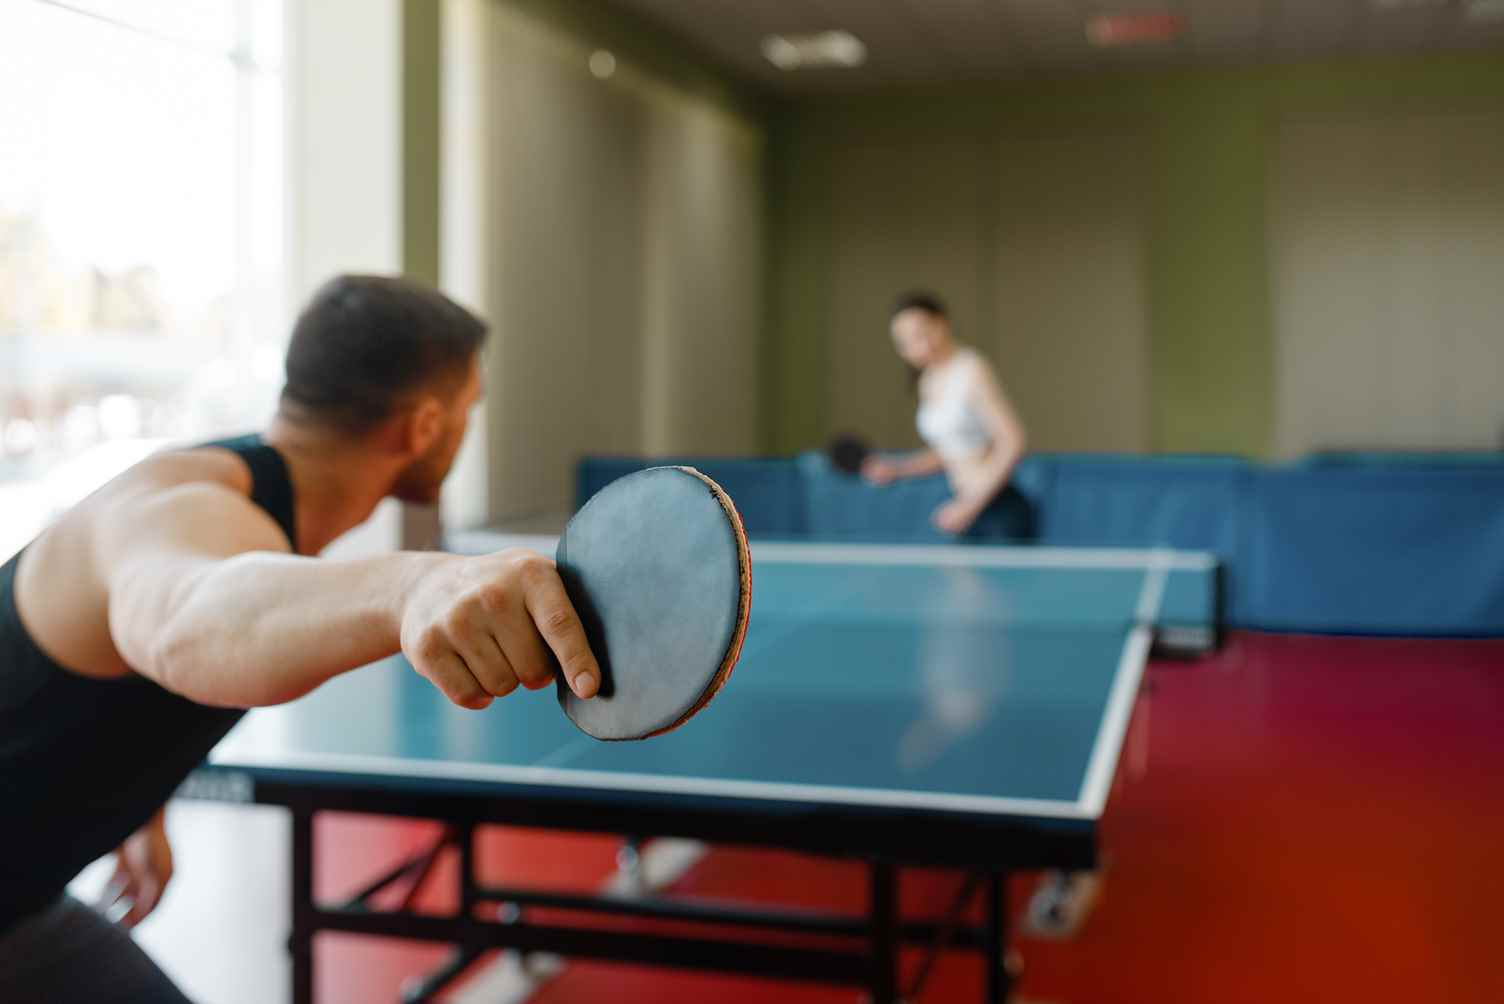 Ping Pong vs Table Tennis: A Few People Know the Difference